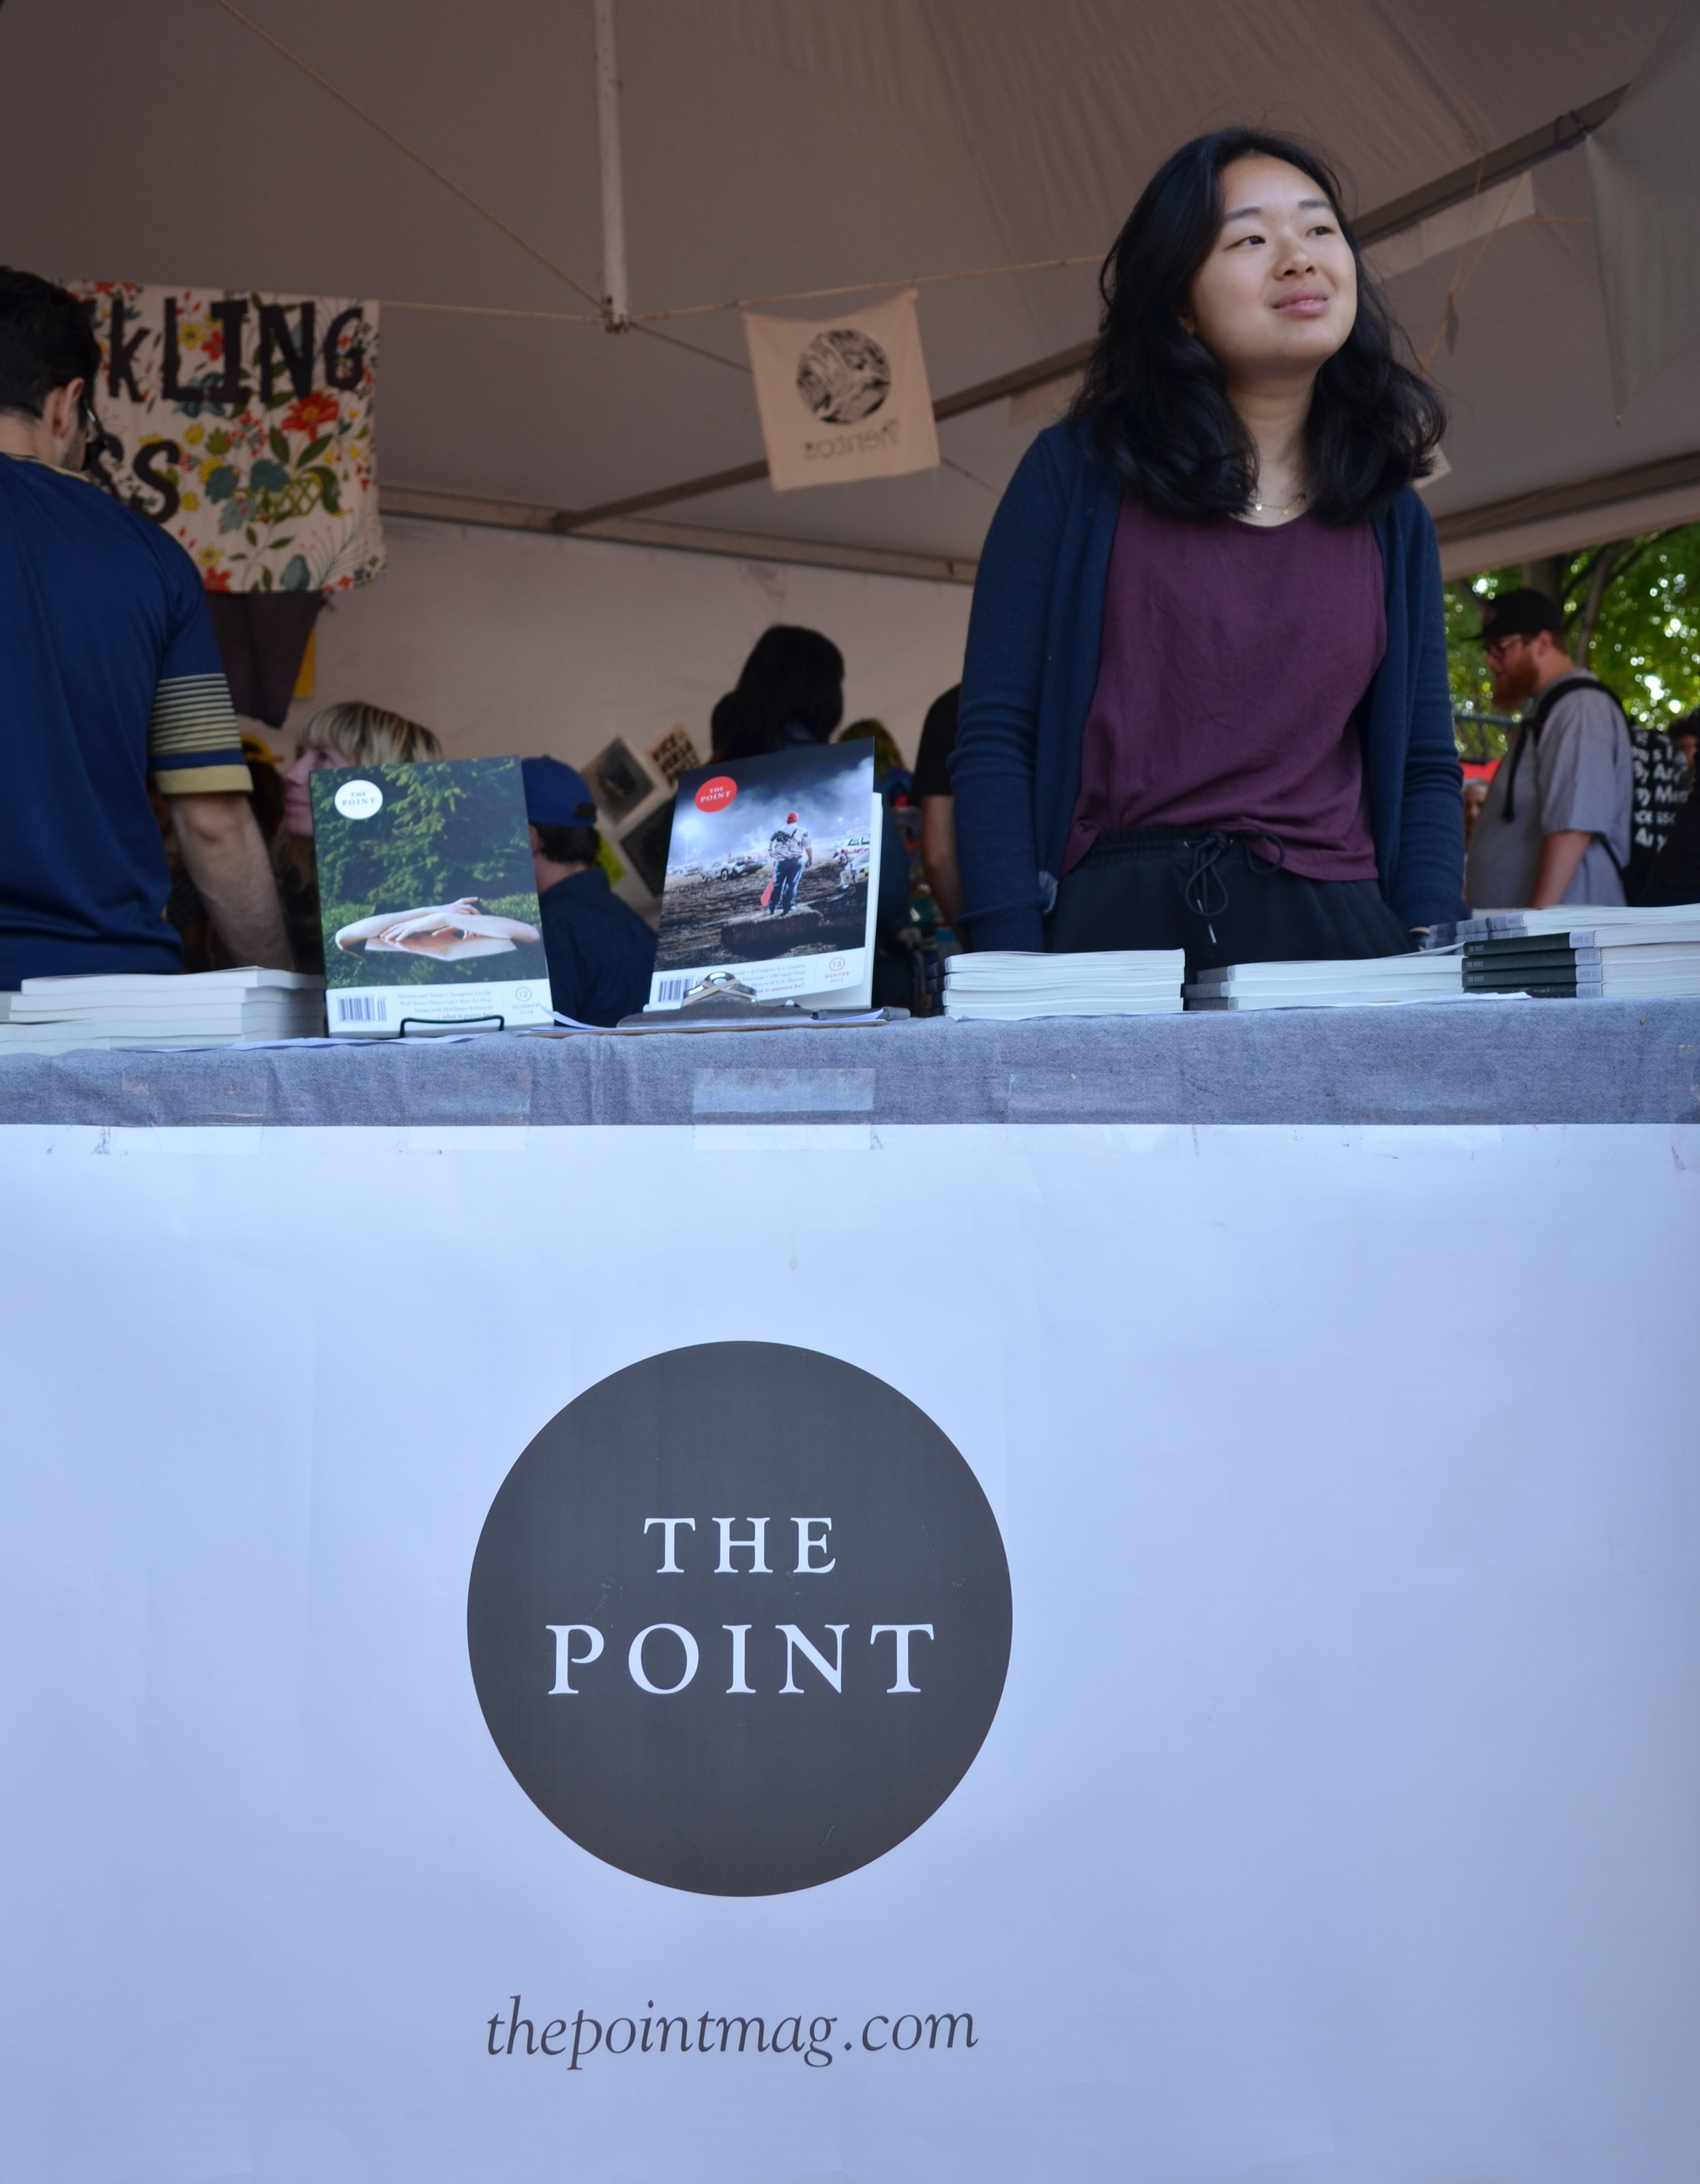 Editors managing The Point publishing table at Pitchfork. Photography by Megan Stringer.